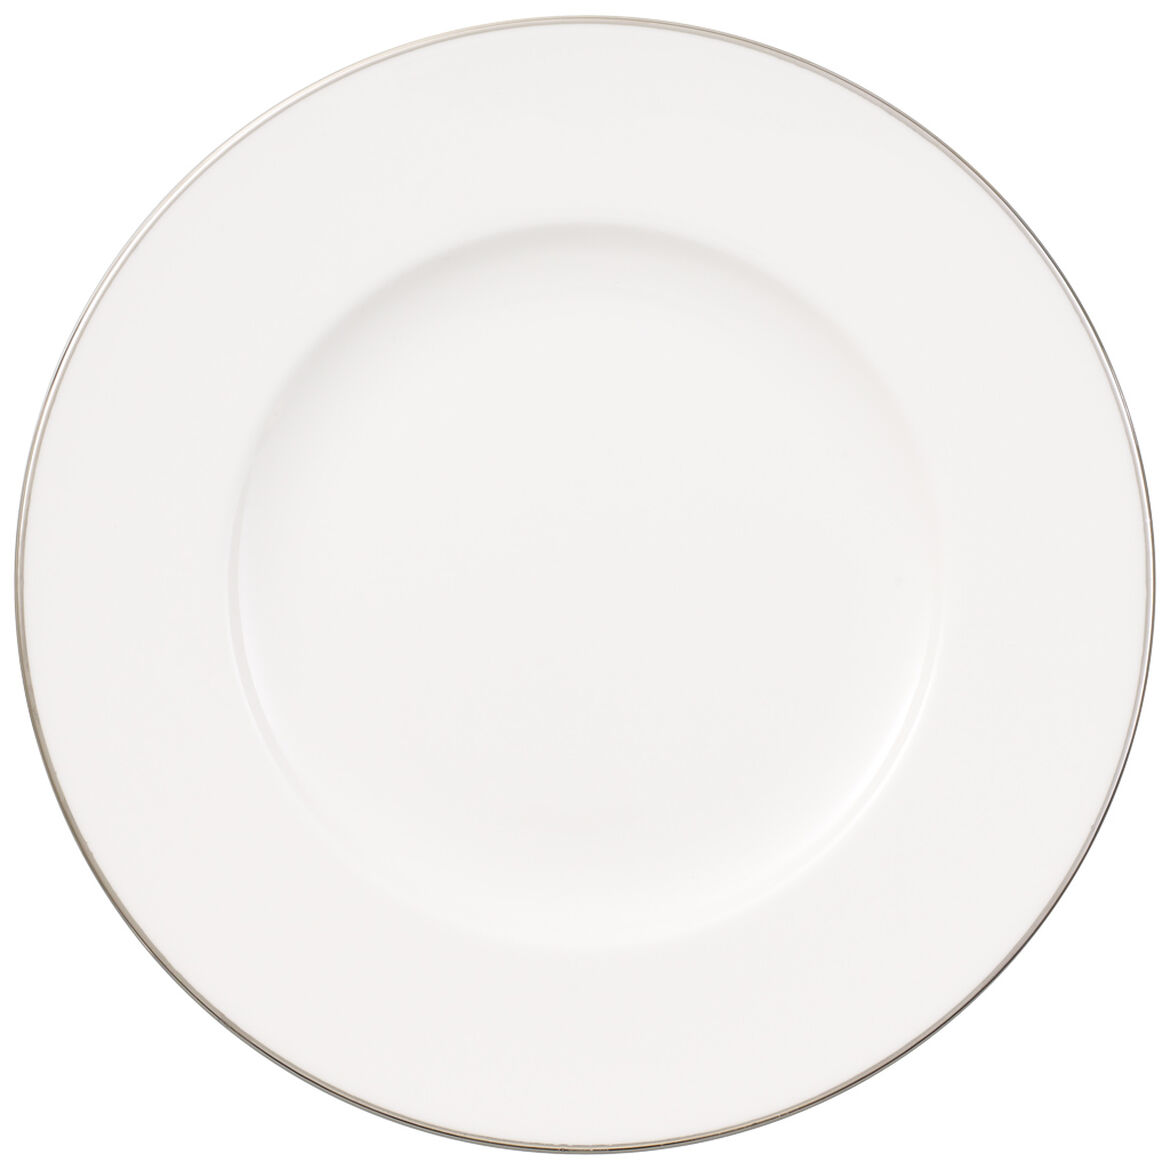 Anmut Platinum No 1 Bread & Butter Plate